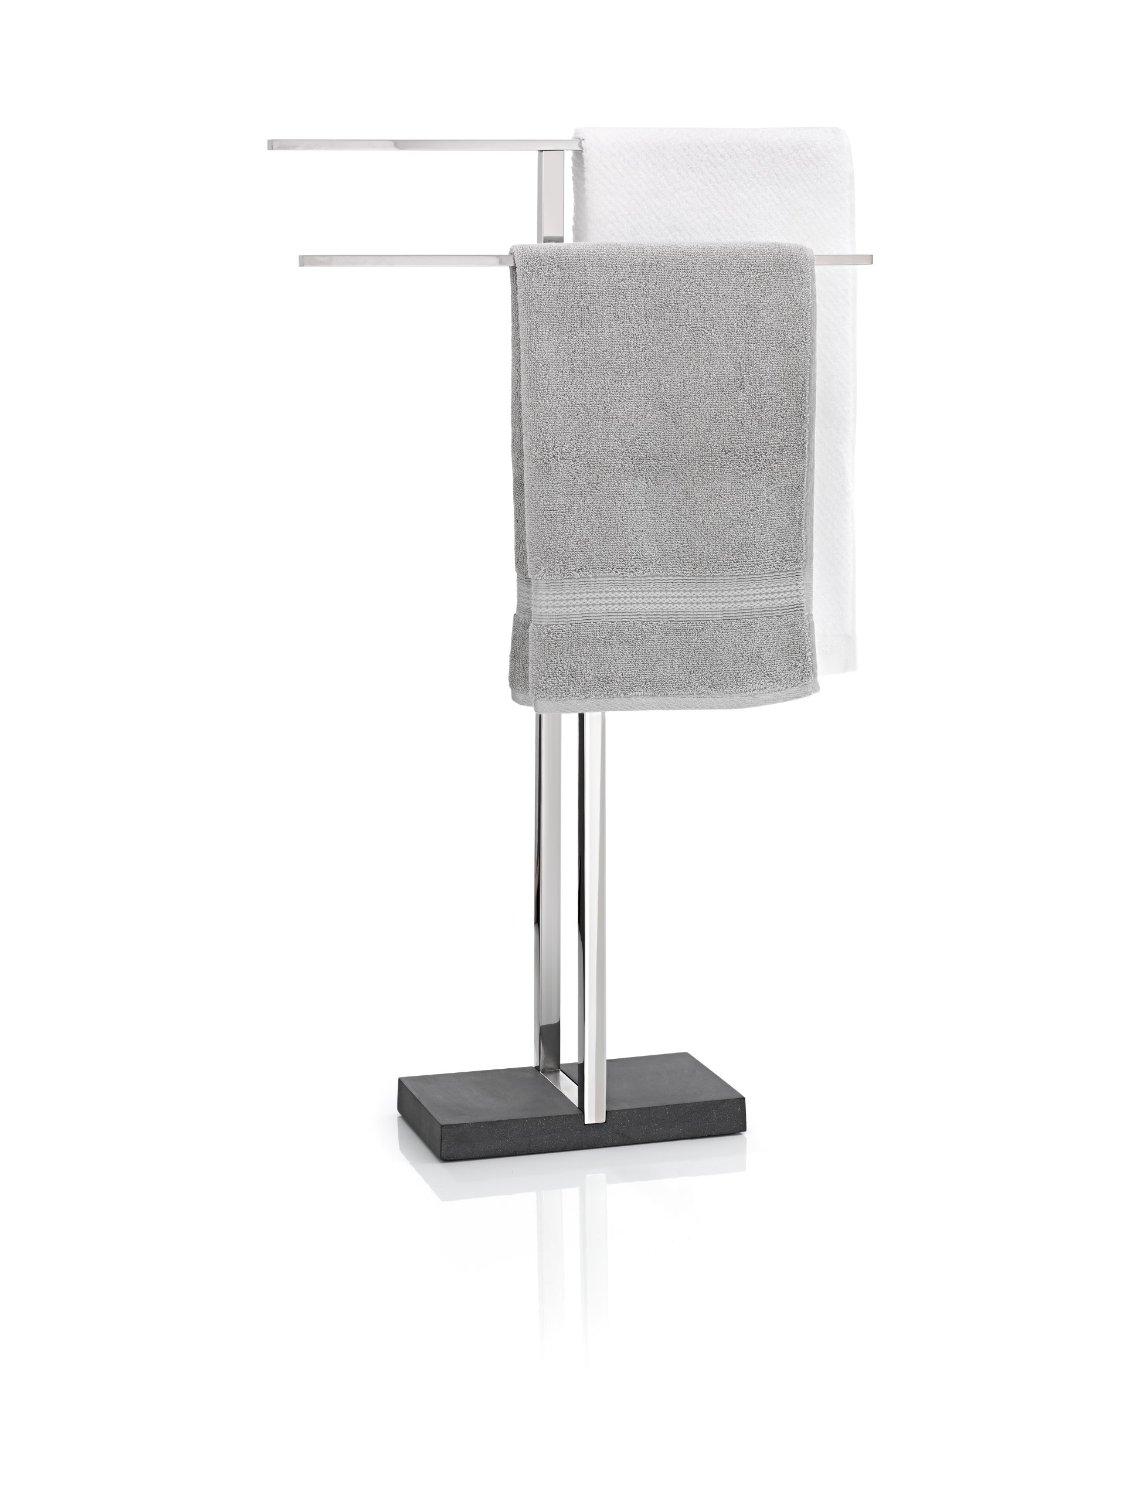 Blomus Floor Standing Towel Rack Stand, Polished Stainless Steel